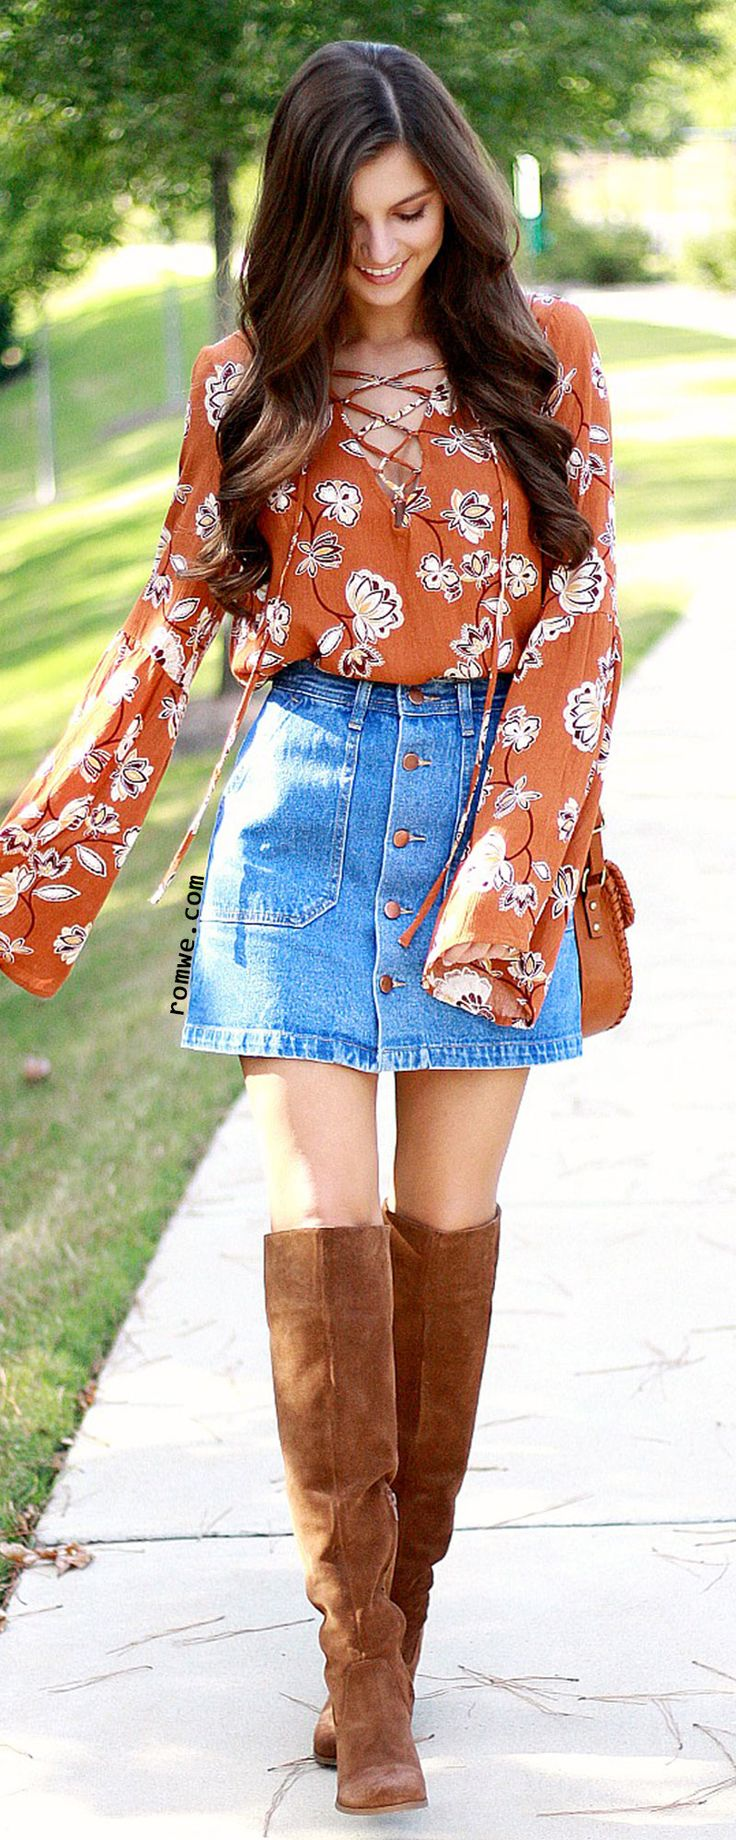 Best 25+ Suede boots ideas on Pinterest | Boots with heels Sexy boots and Knee high boots